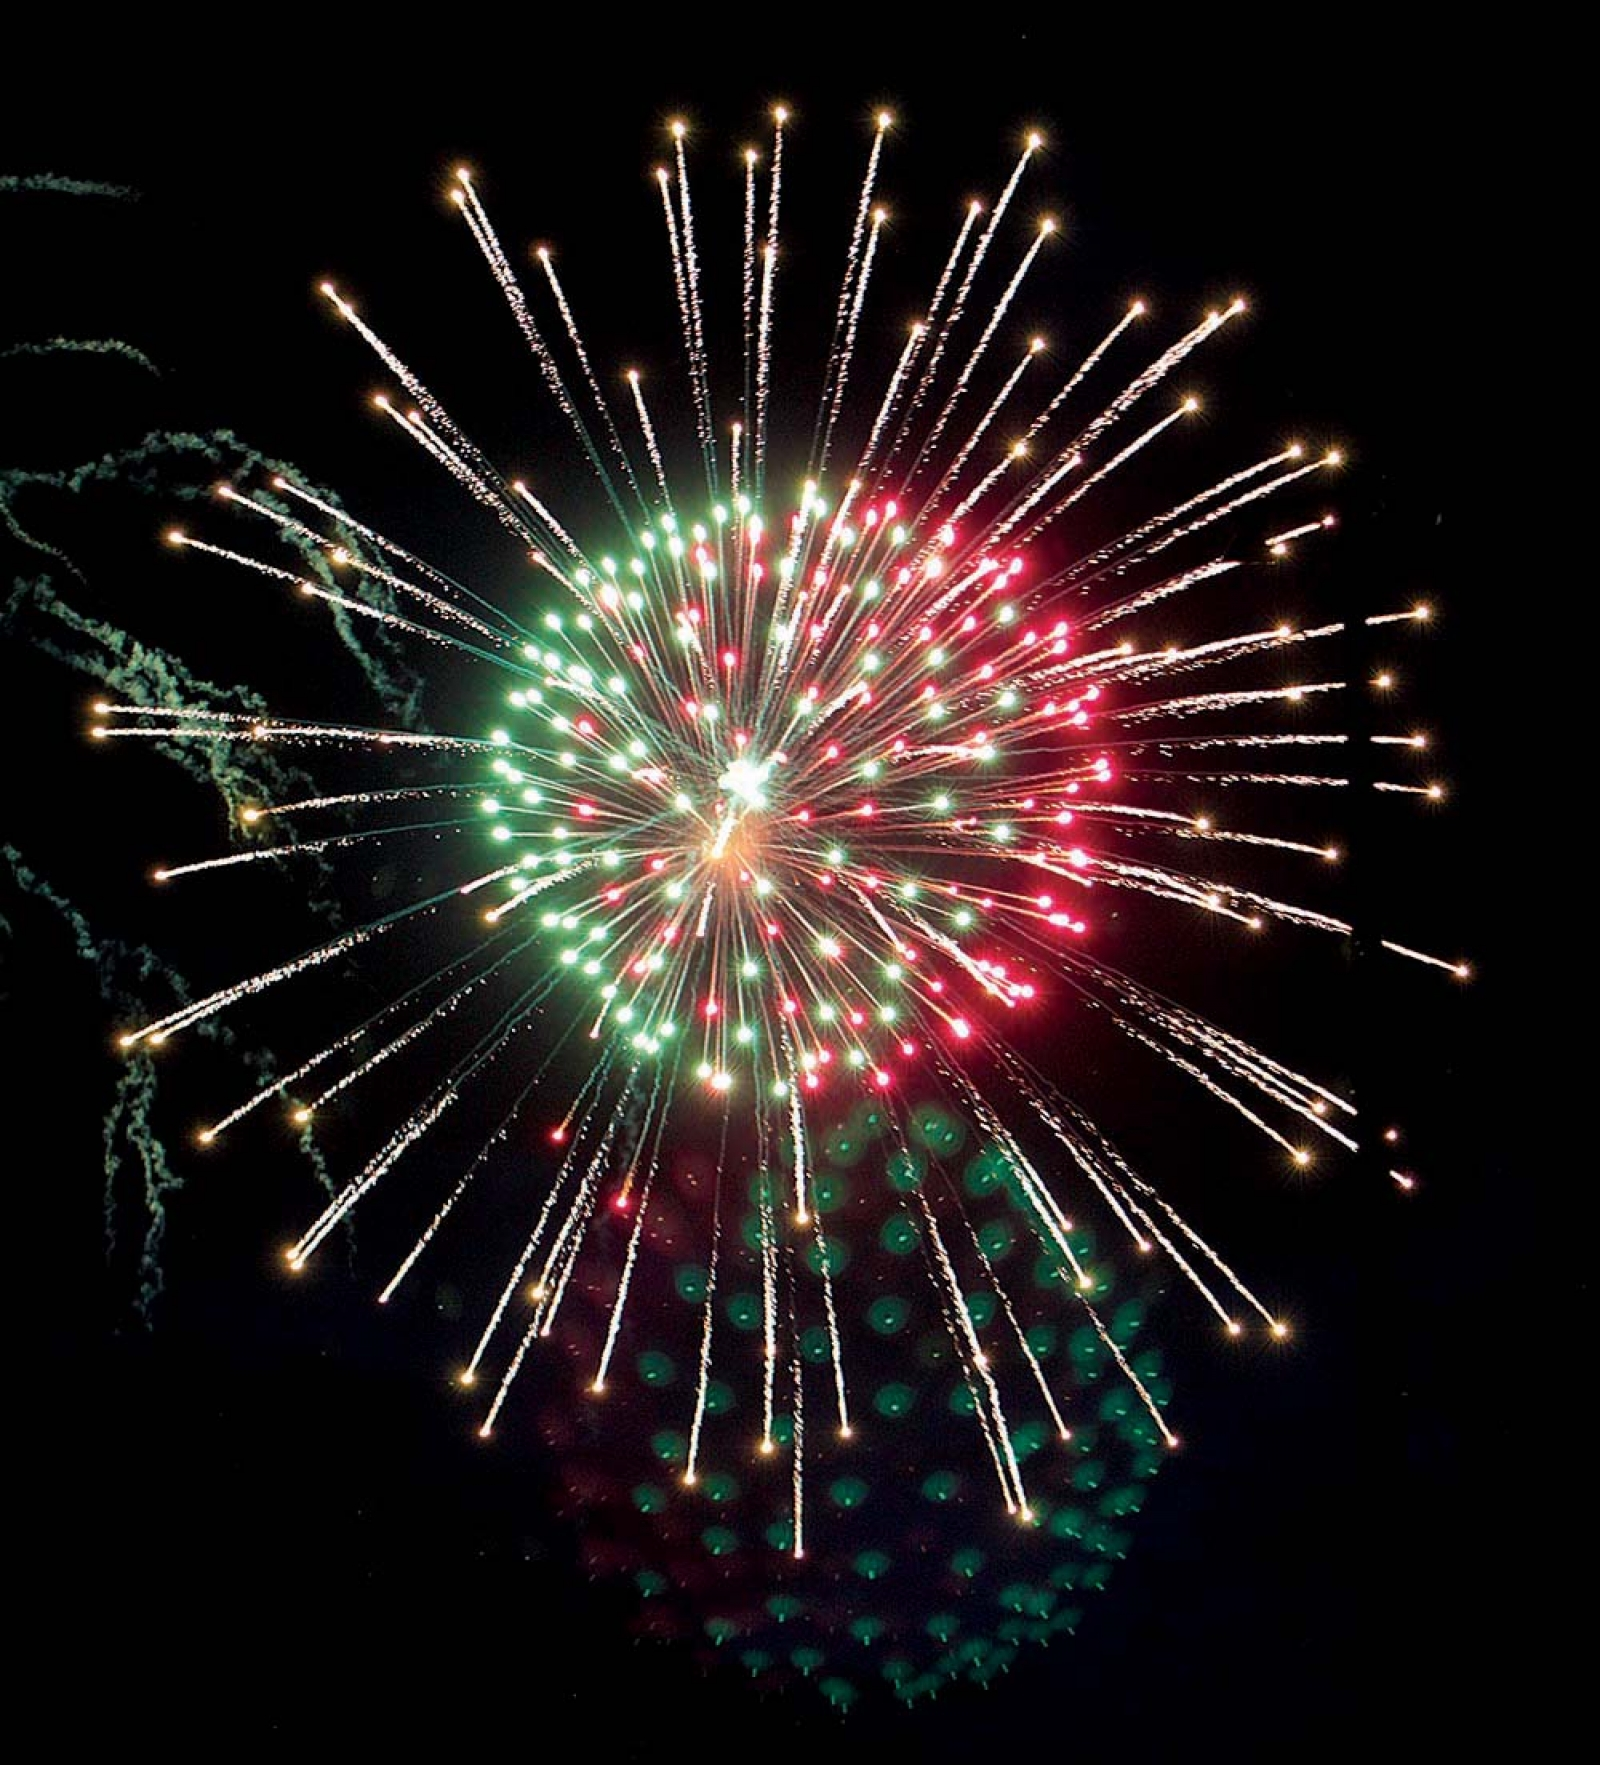 Fireworks: Celebrate By Making A Bang - Safely